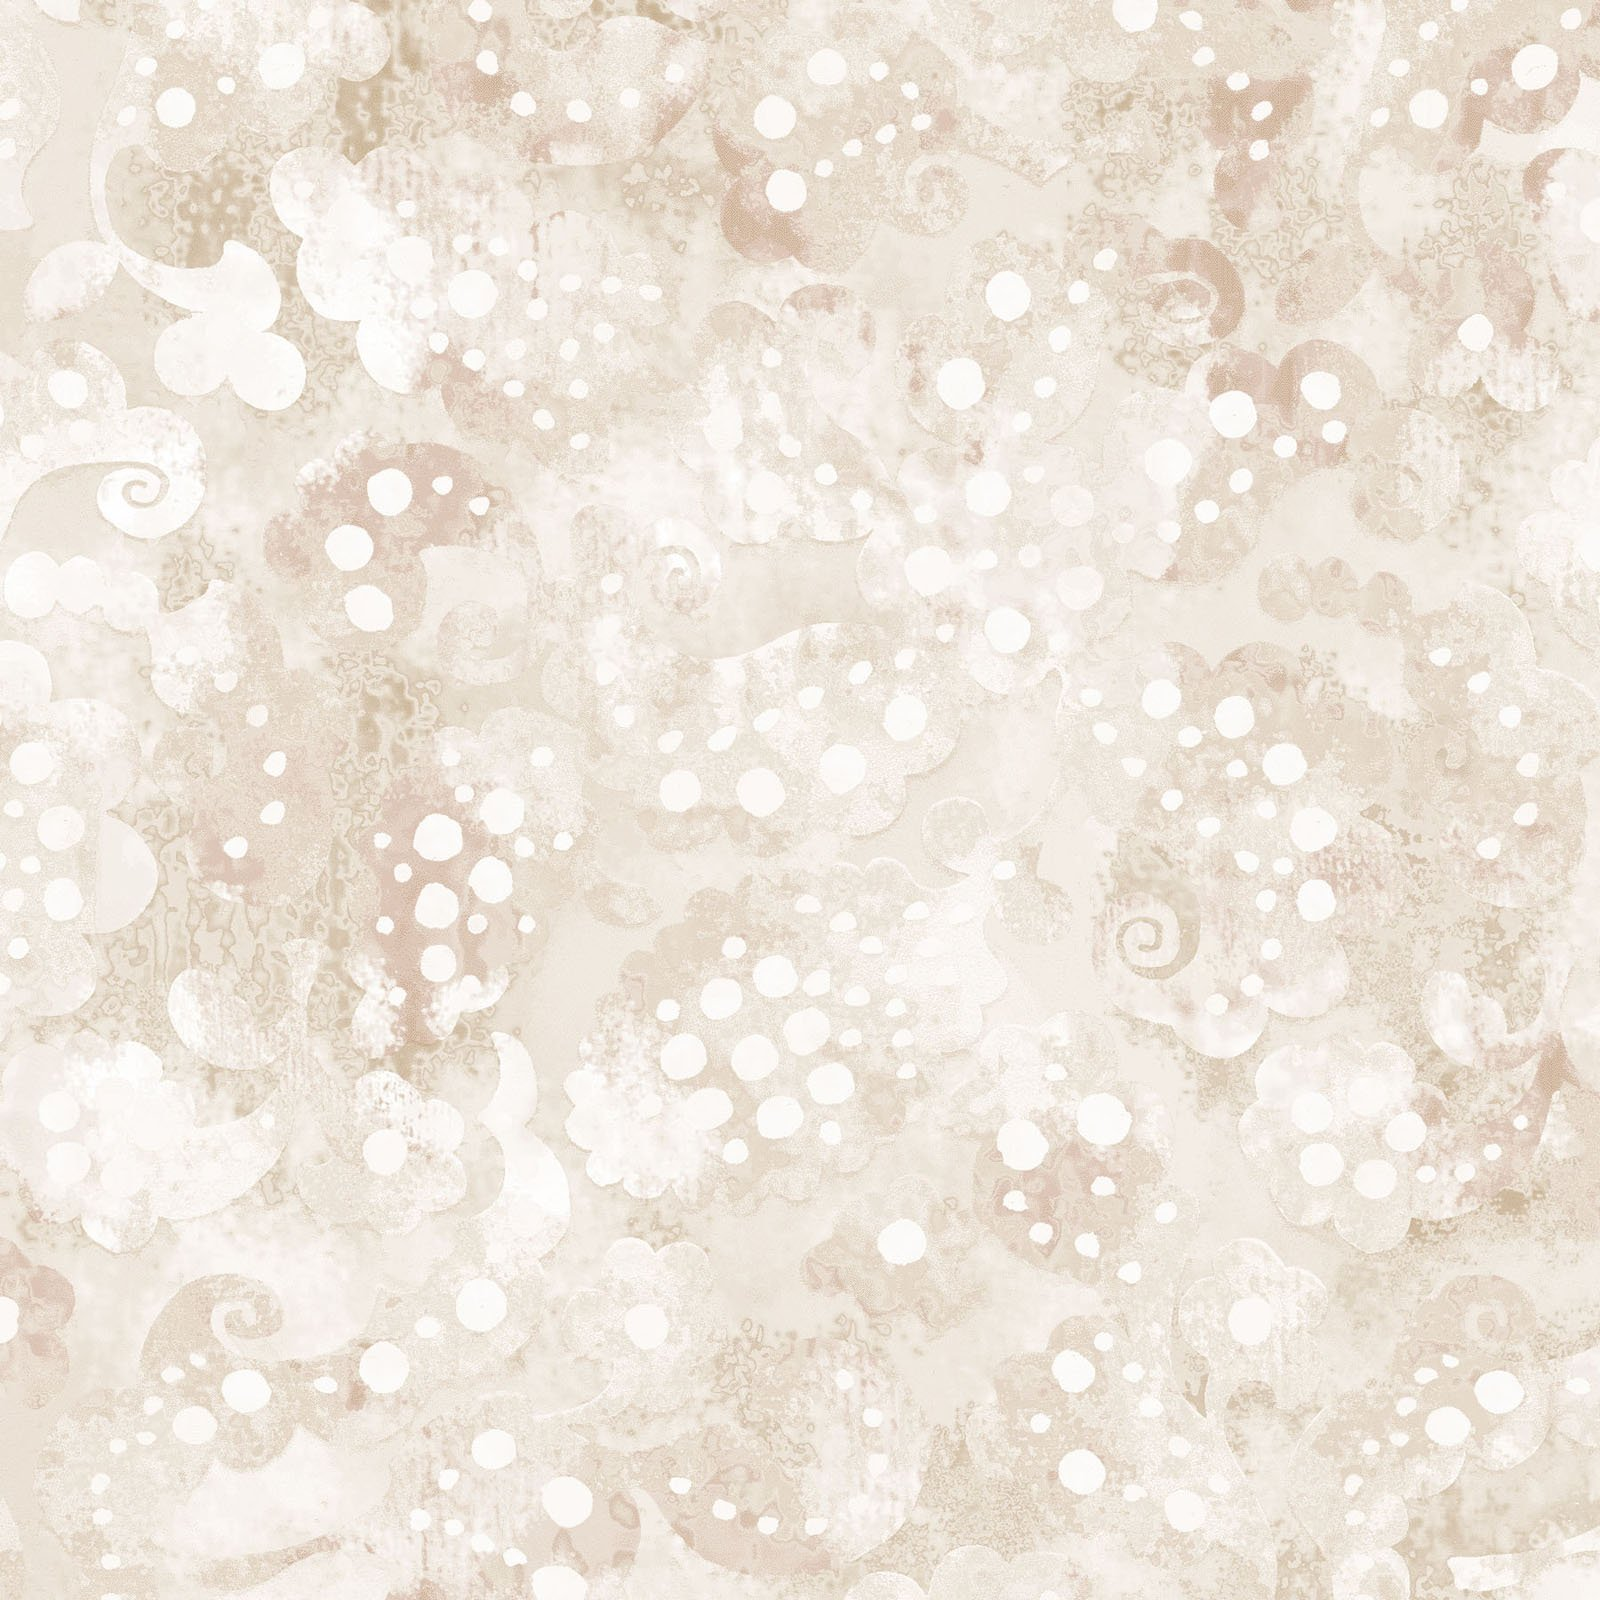 DADR-4358 NE - DAY DREAMS 108 BY P&B TEXTILES NEUTRAL - ARRIVING IN FEBRUARY 2021